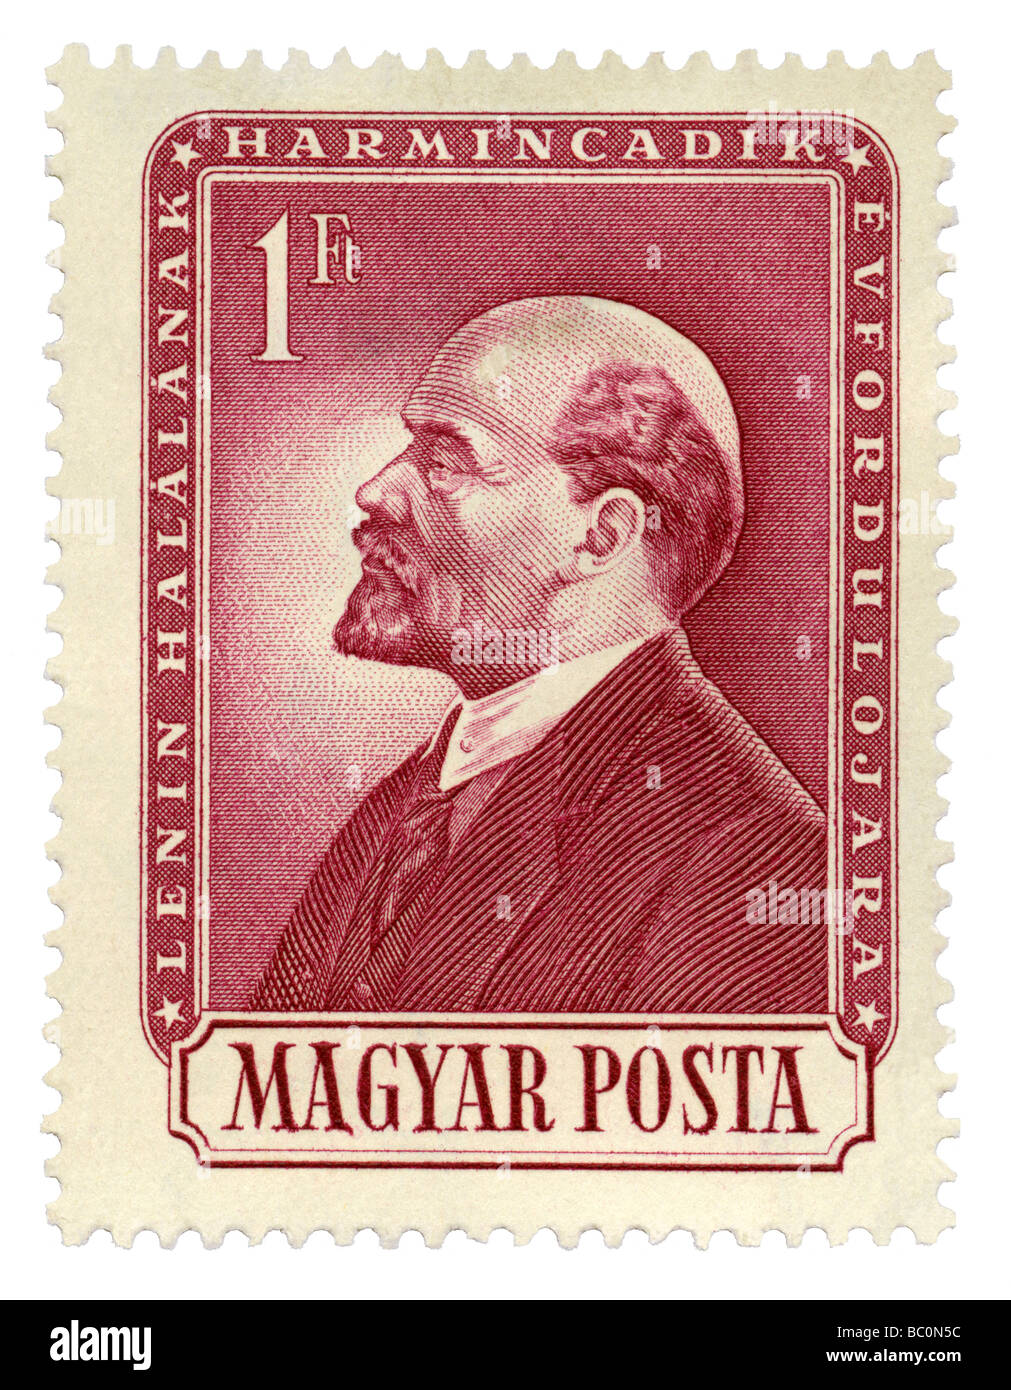 Old Hungarian postage stamp with portrait of Lenin - Stock Image